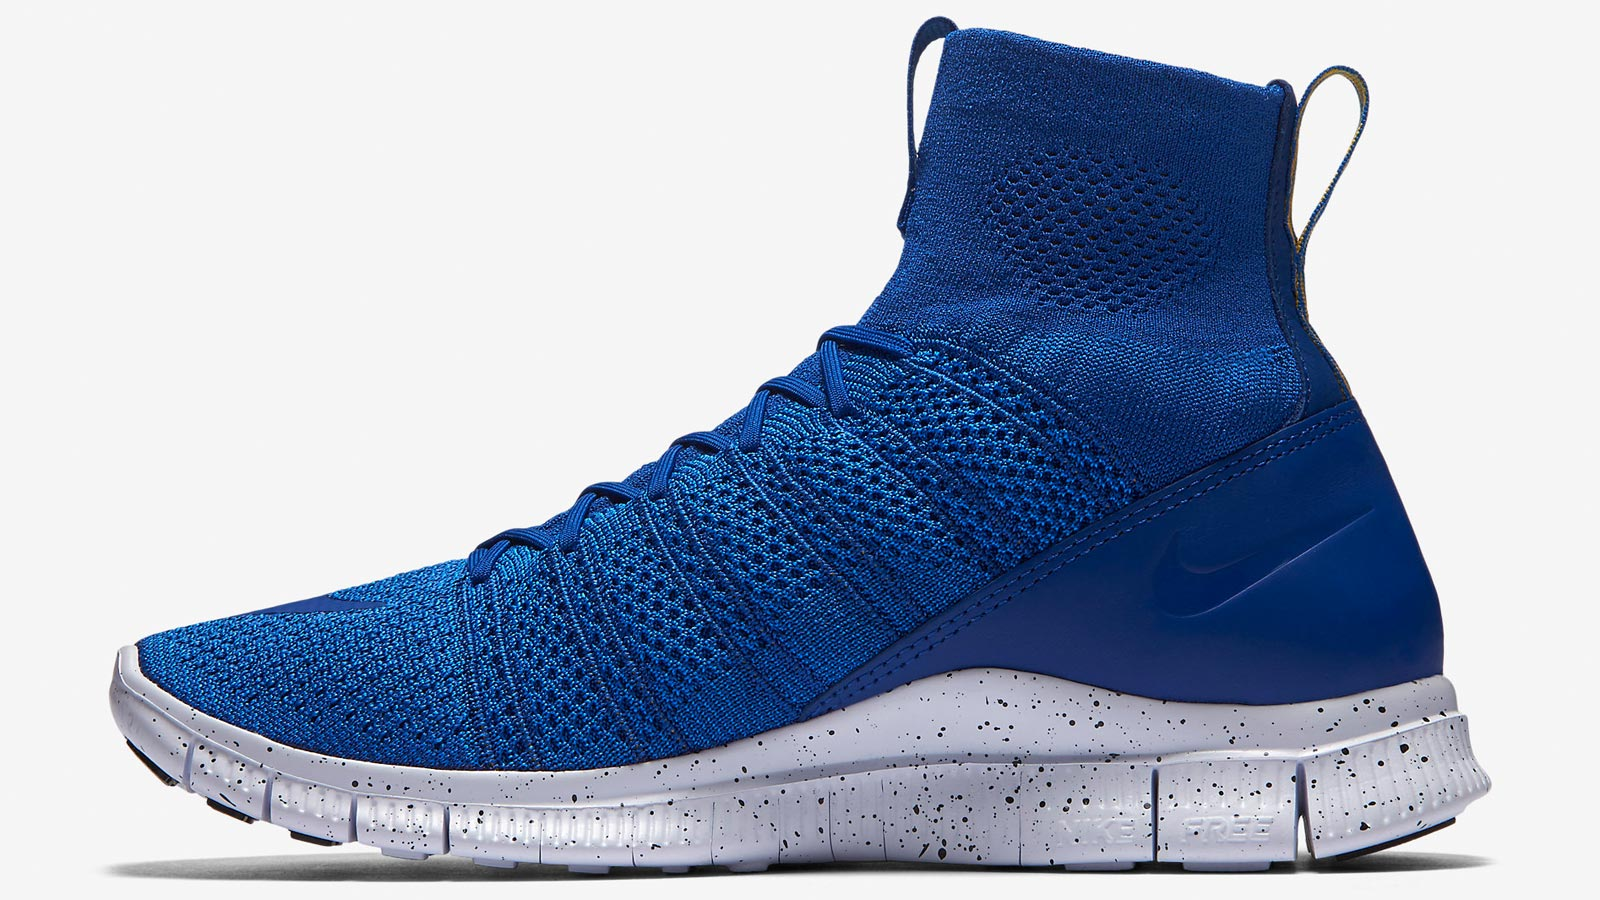 Blue Nike Free Mercurial Superfly 2016 Shoes Revealed ...